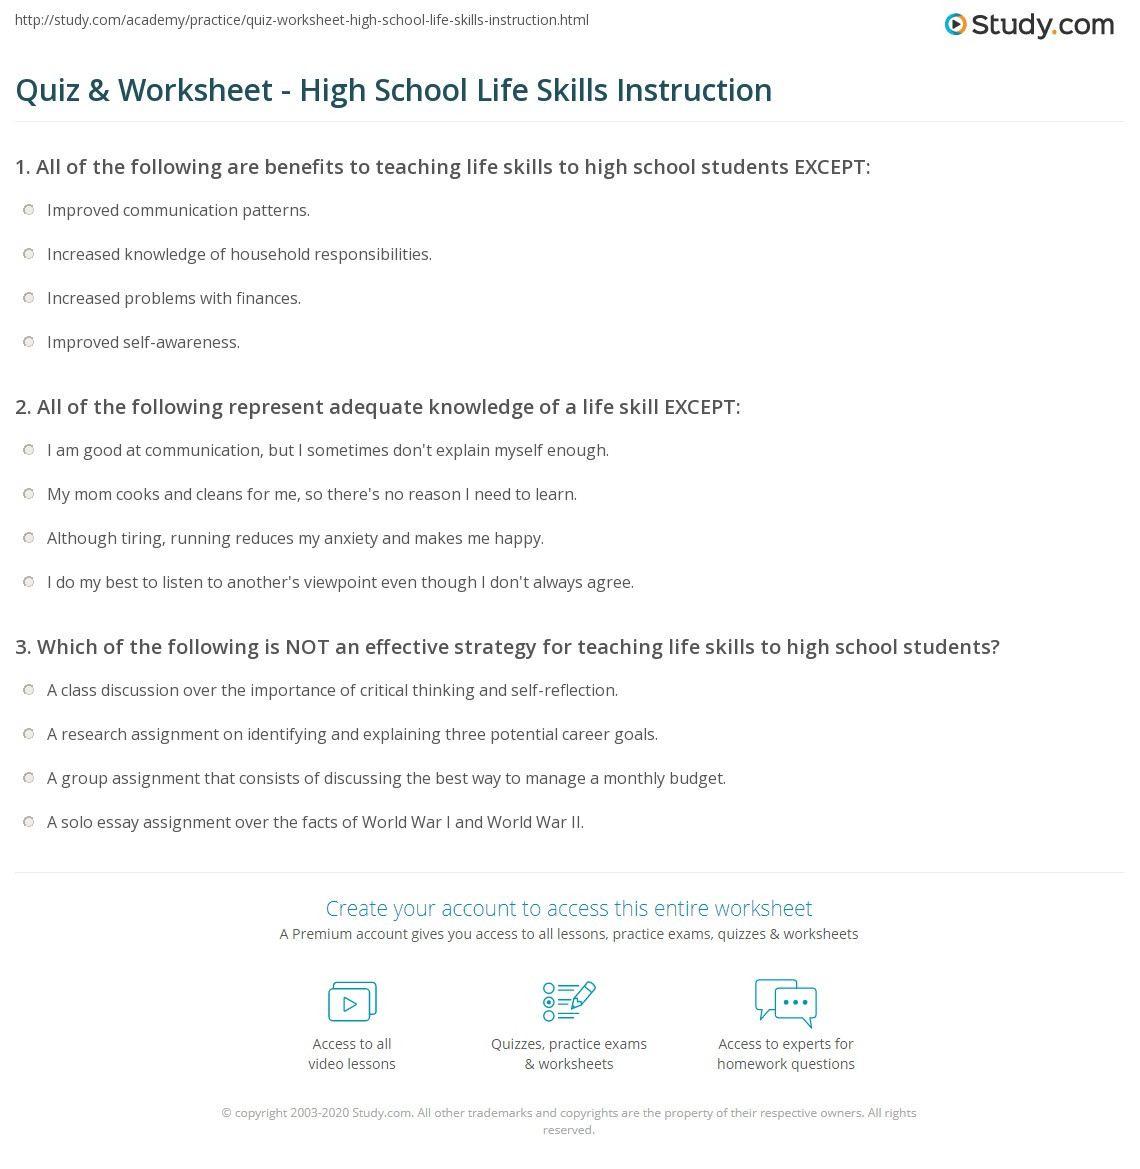 Career Worksheets for High School Quiz & Worksheet High School Life Skills Instruction